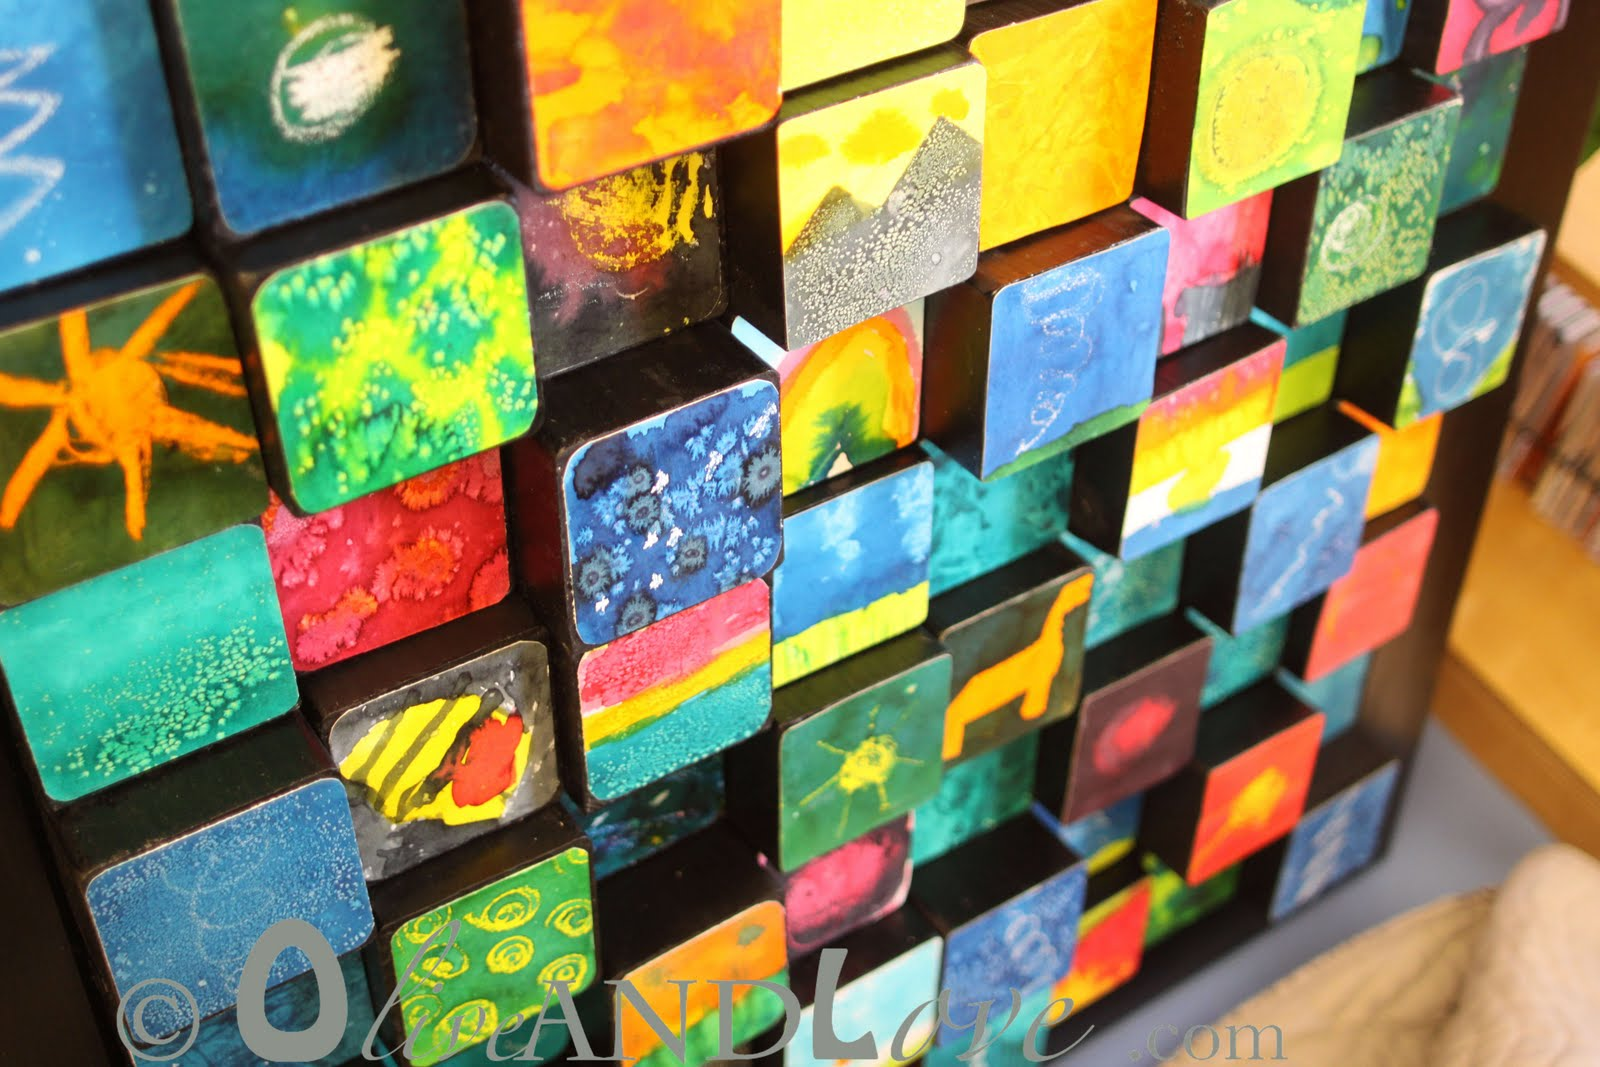 Classroom Project Ideas ~ Olive and love d wooden blocks children s auction art